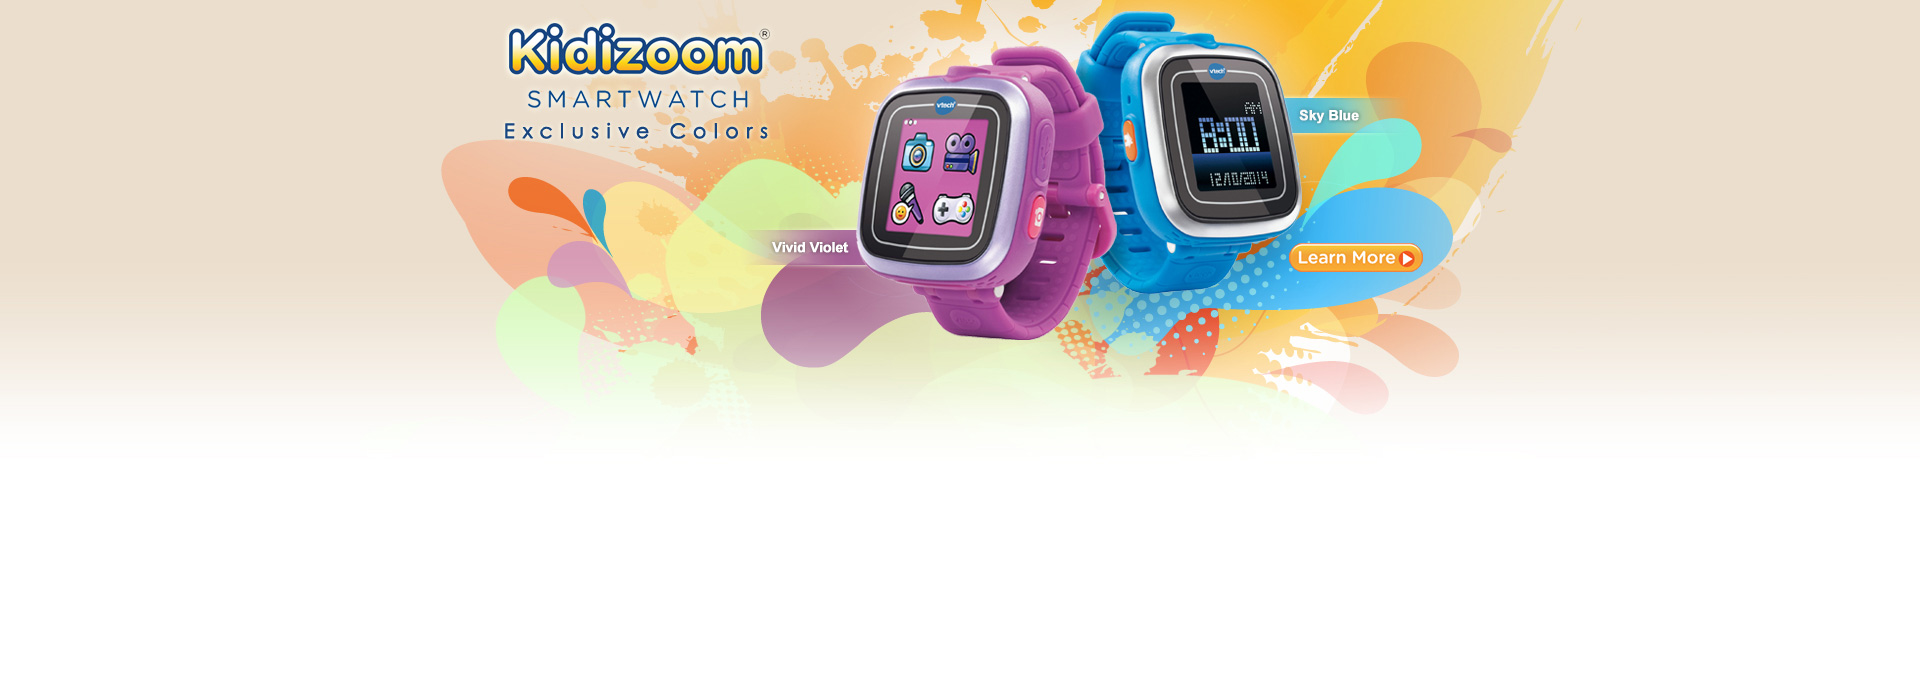 Kidizoom Smartwatch - Exclusive Colors